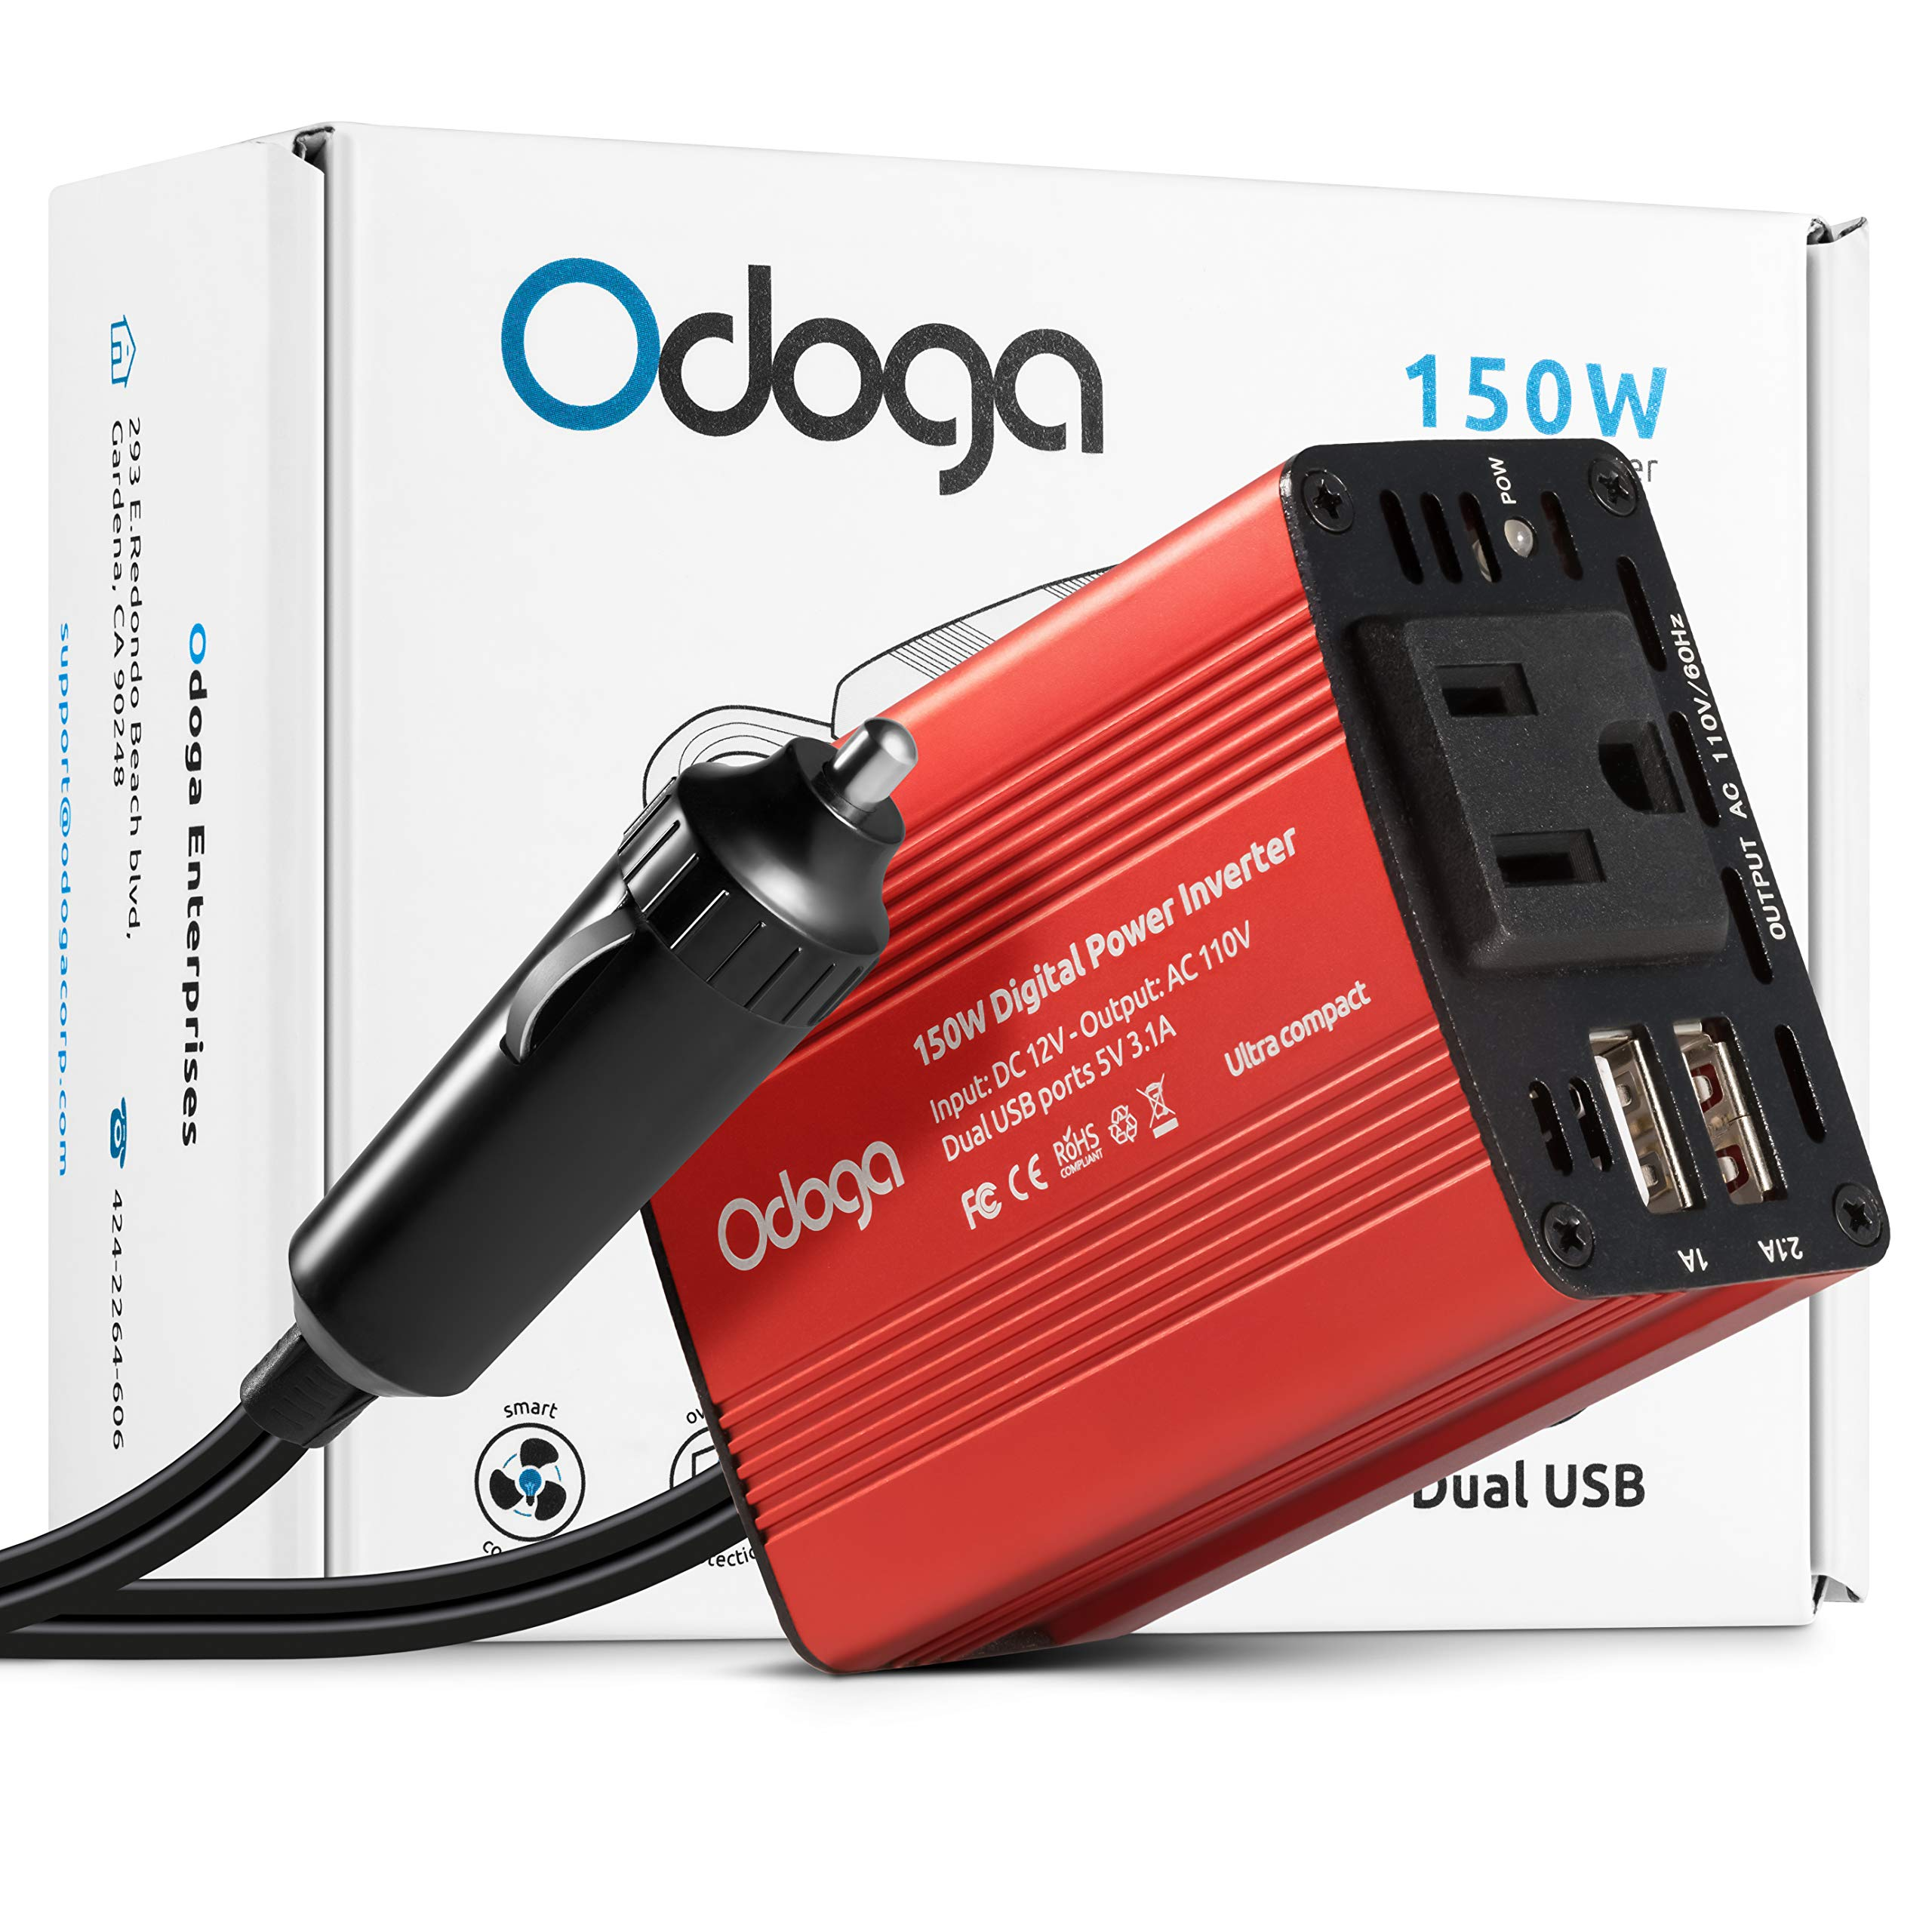 Odoga 150W Car Power Inverter DC 12V to 110V AC Car Adapter ~ Dual USB Ports ~ Charge Your Electronics On The Go by Odoga